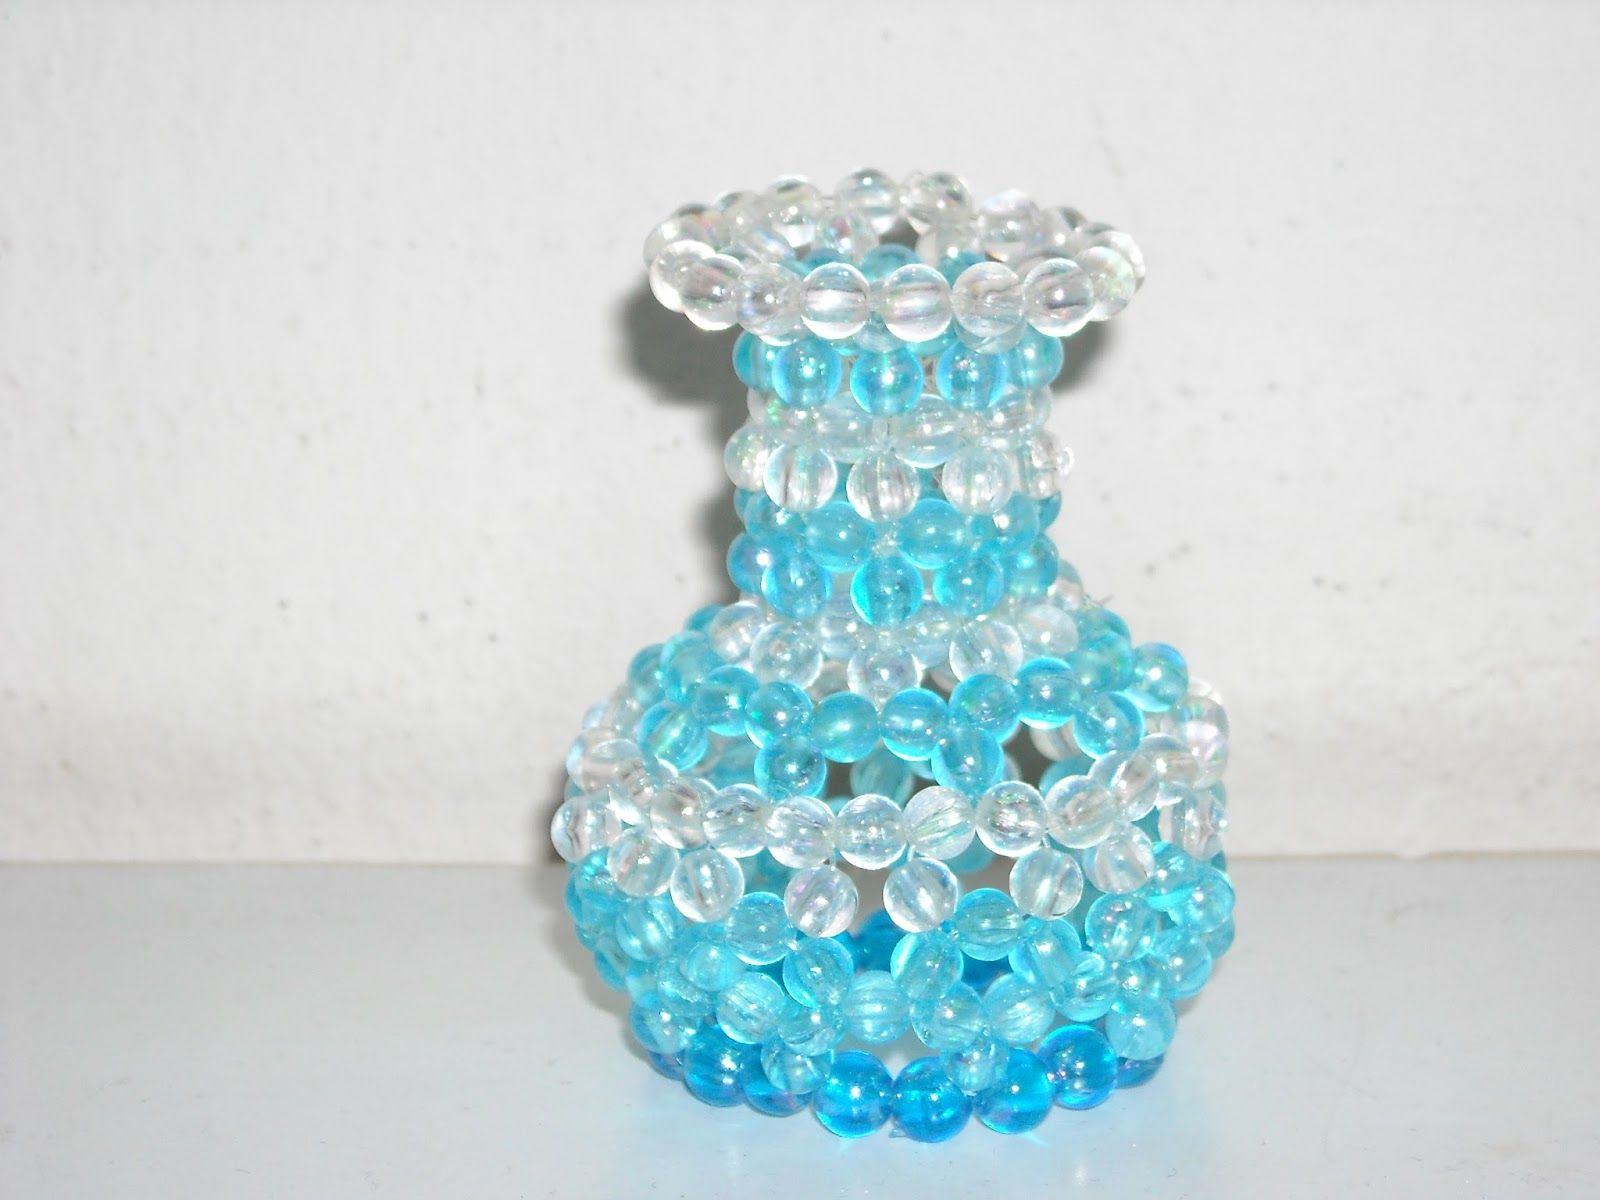 My craftwork collection: My DIY beaded flower vase | Beads/bead ...